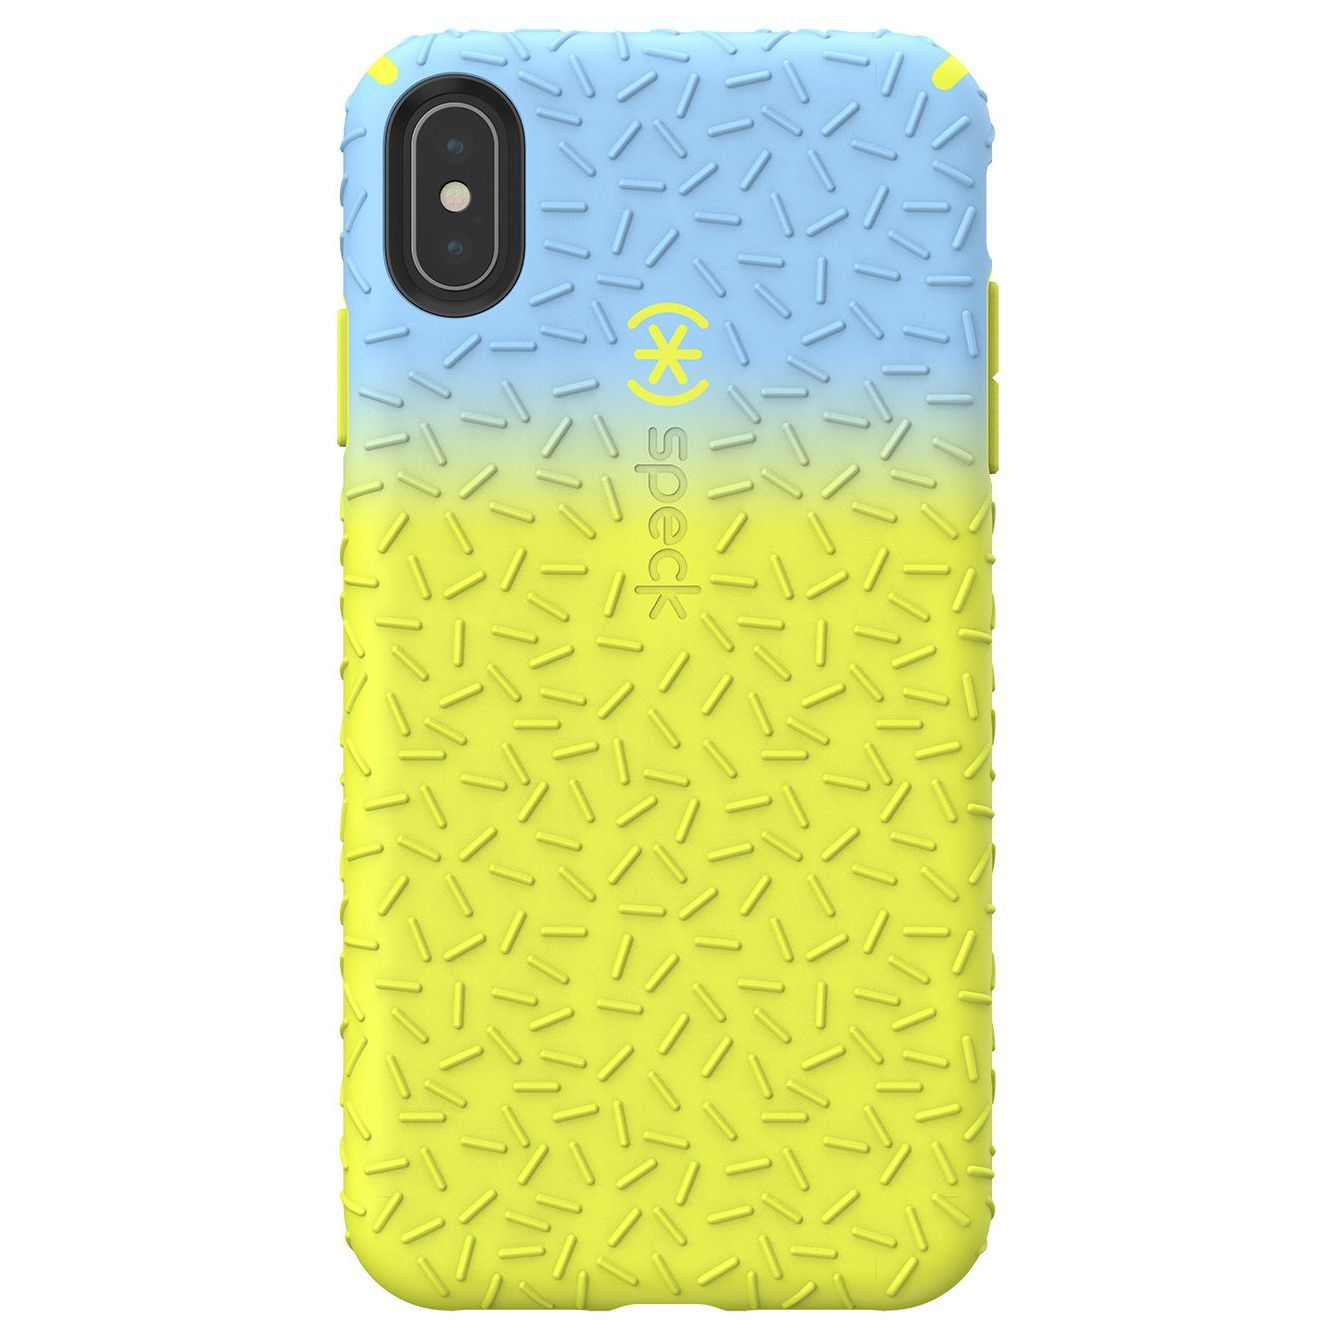 best service 5e741 e6bbf Speck CandyShell Fit Case for iPhone XS Max